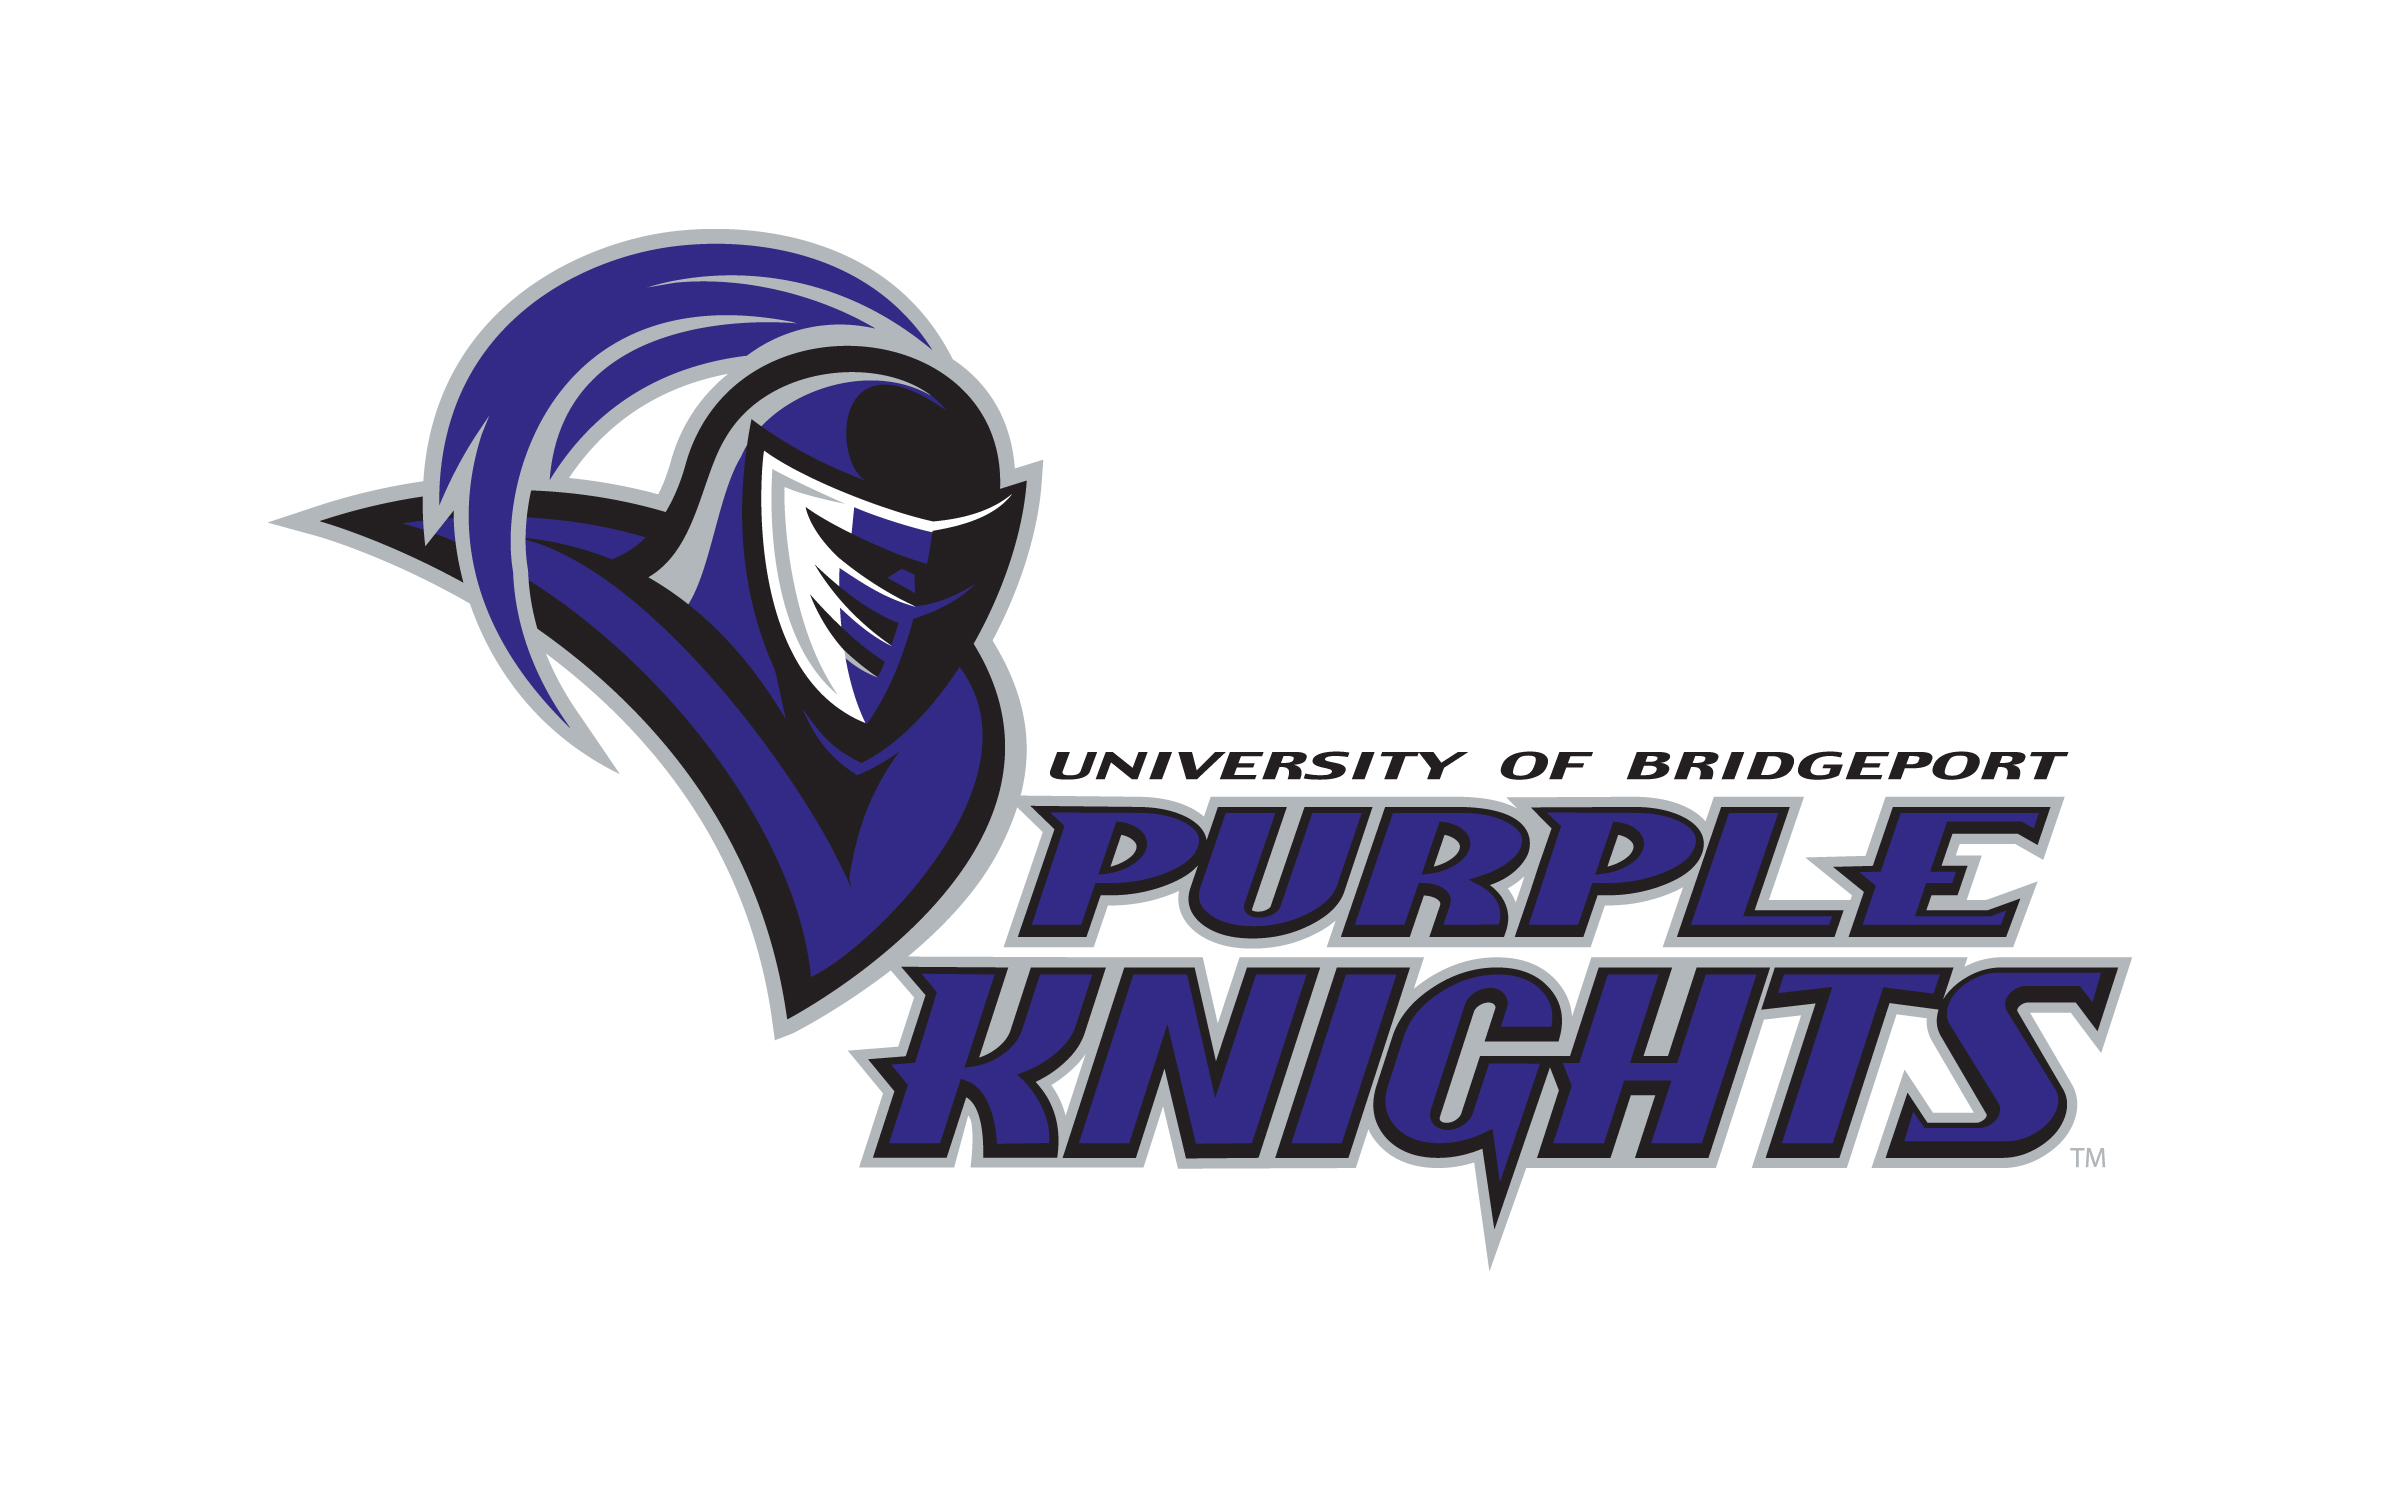 University of Bridgeport logo